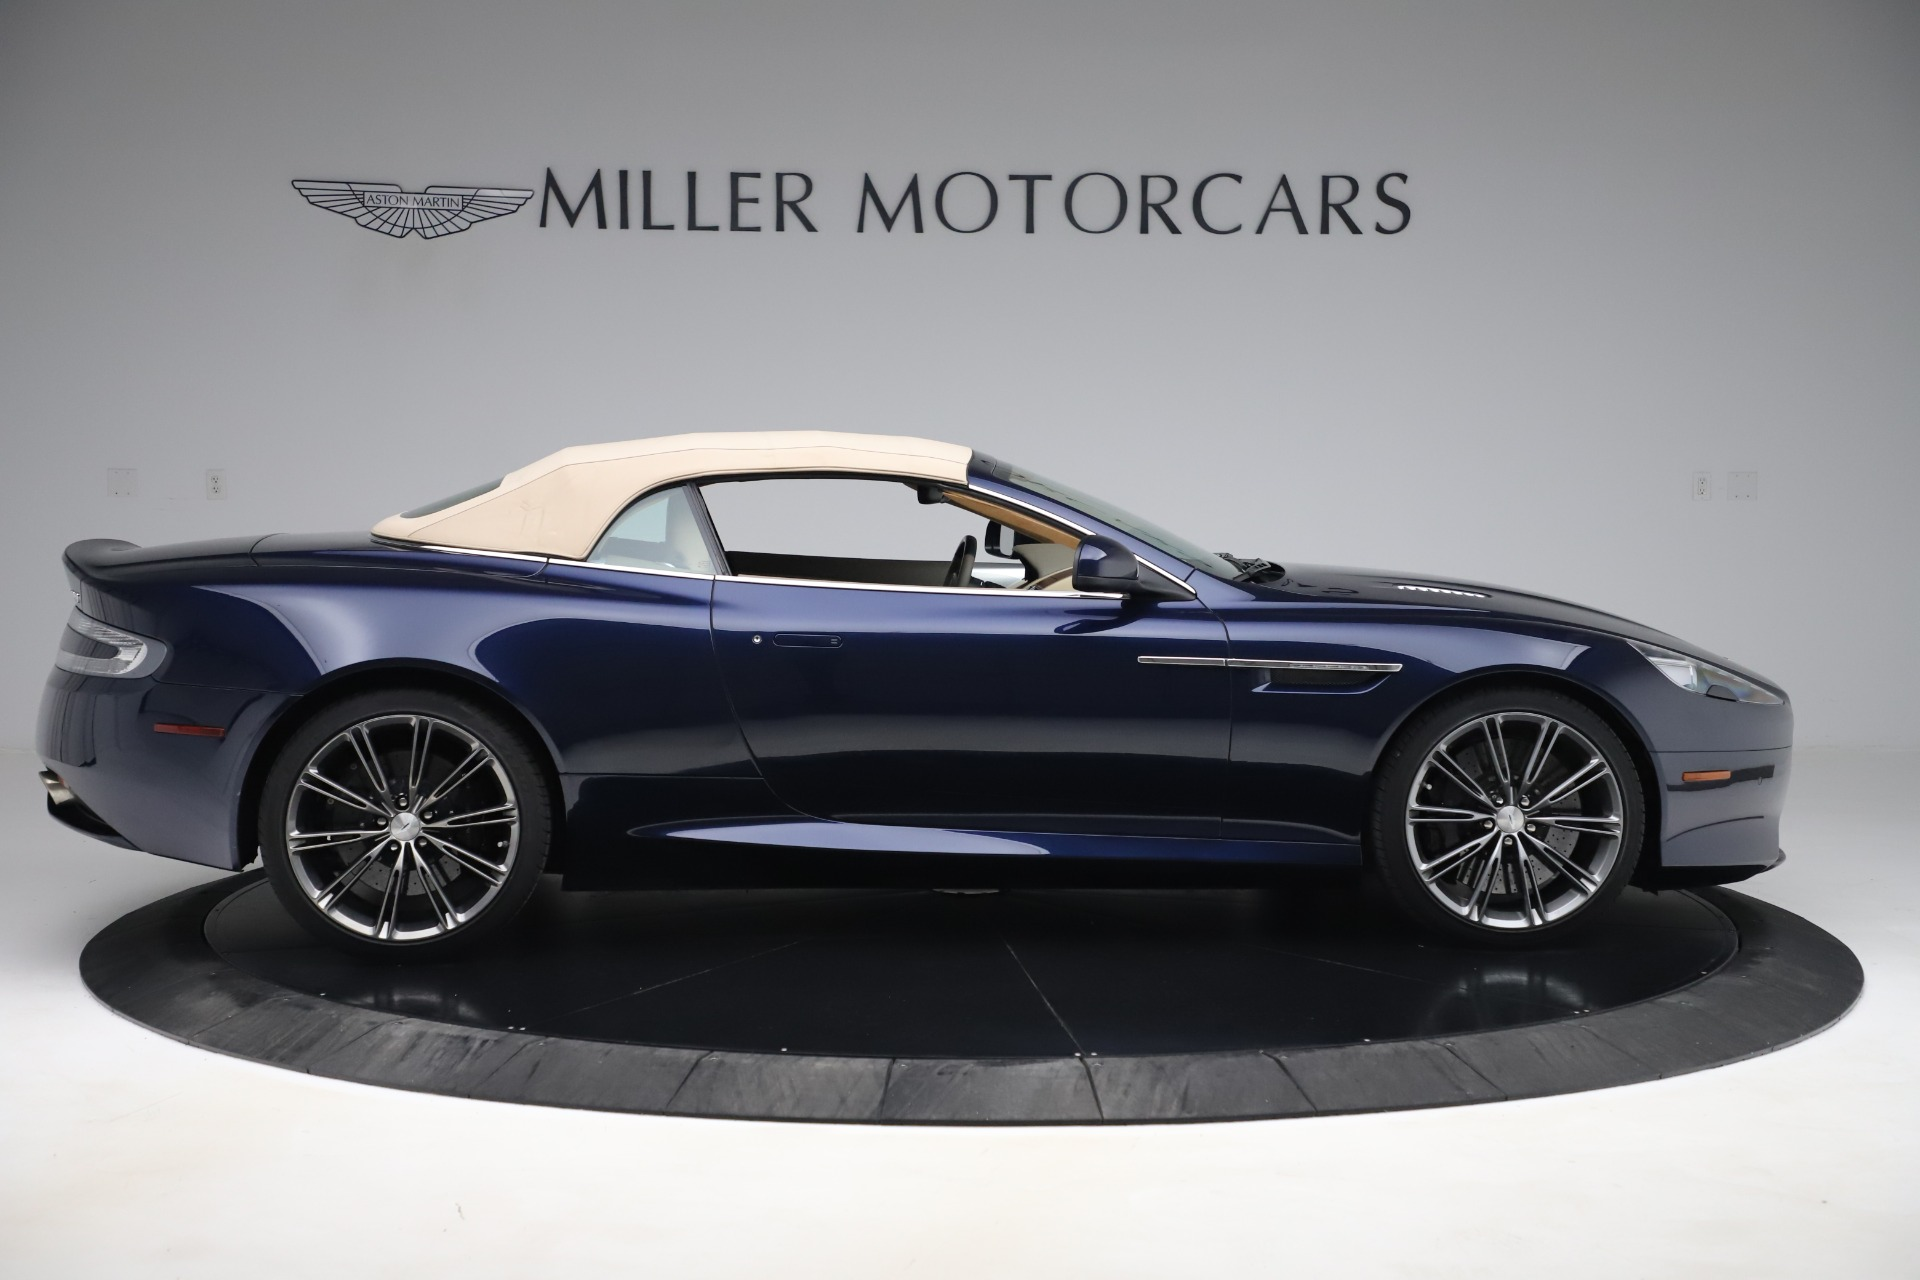 Used 2014 Aston Martin DB9 Volante For Sale In Westport, CT 3591_p17